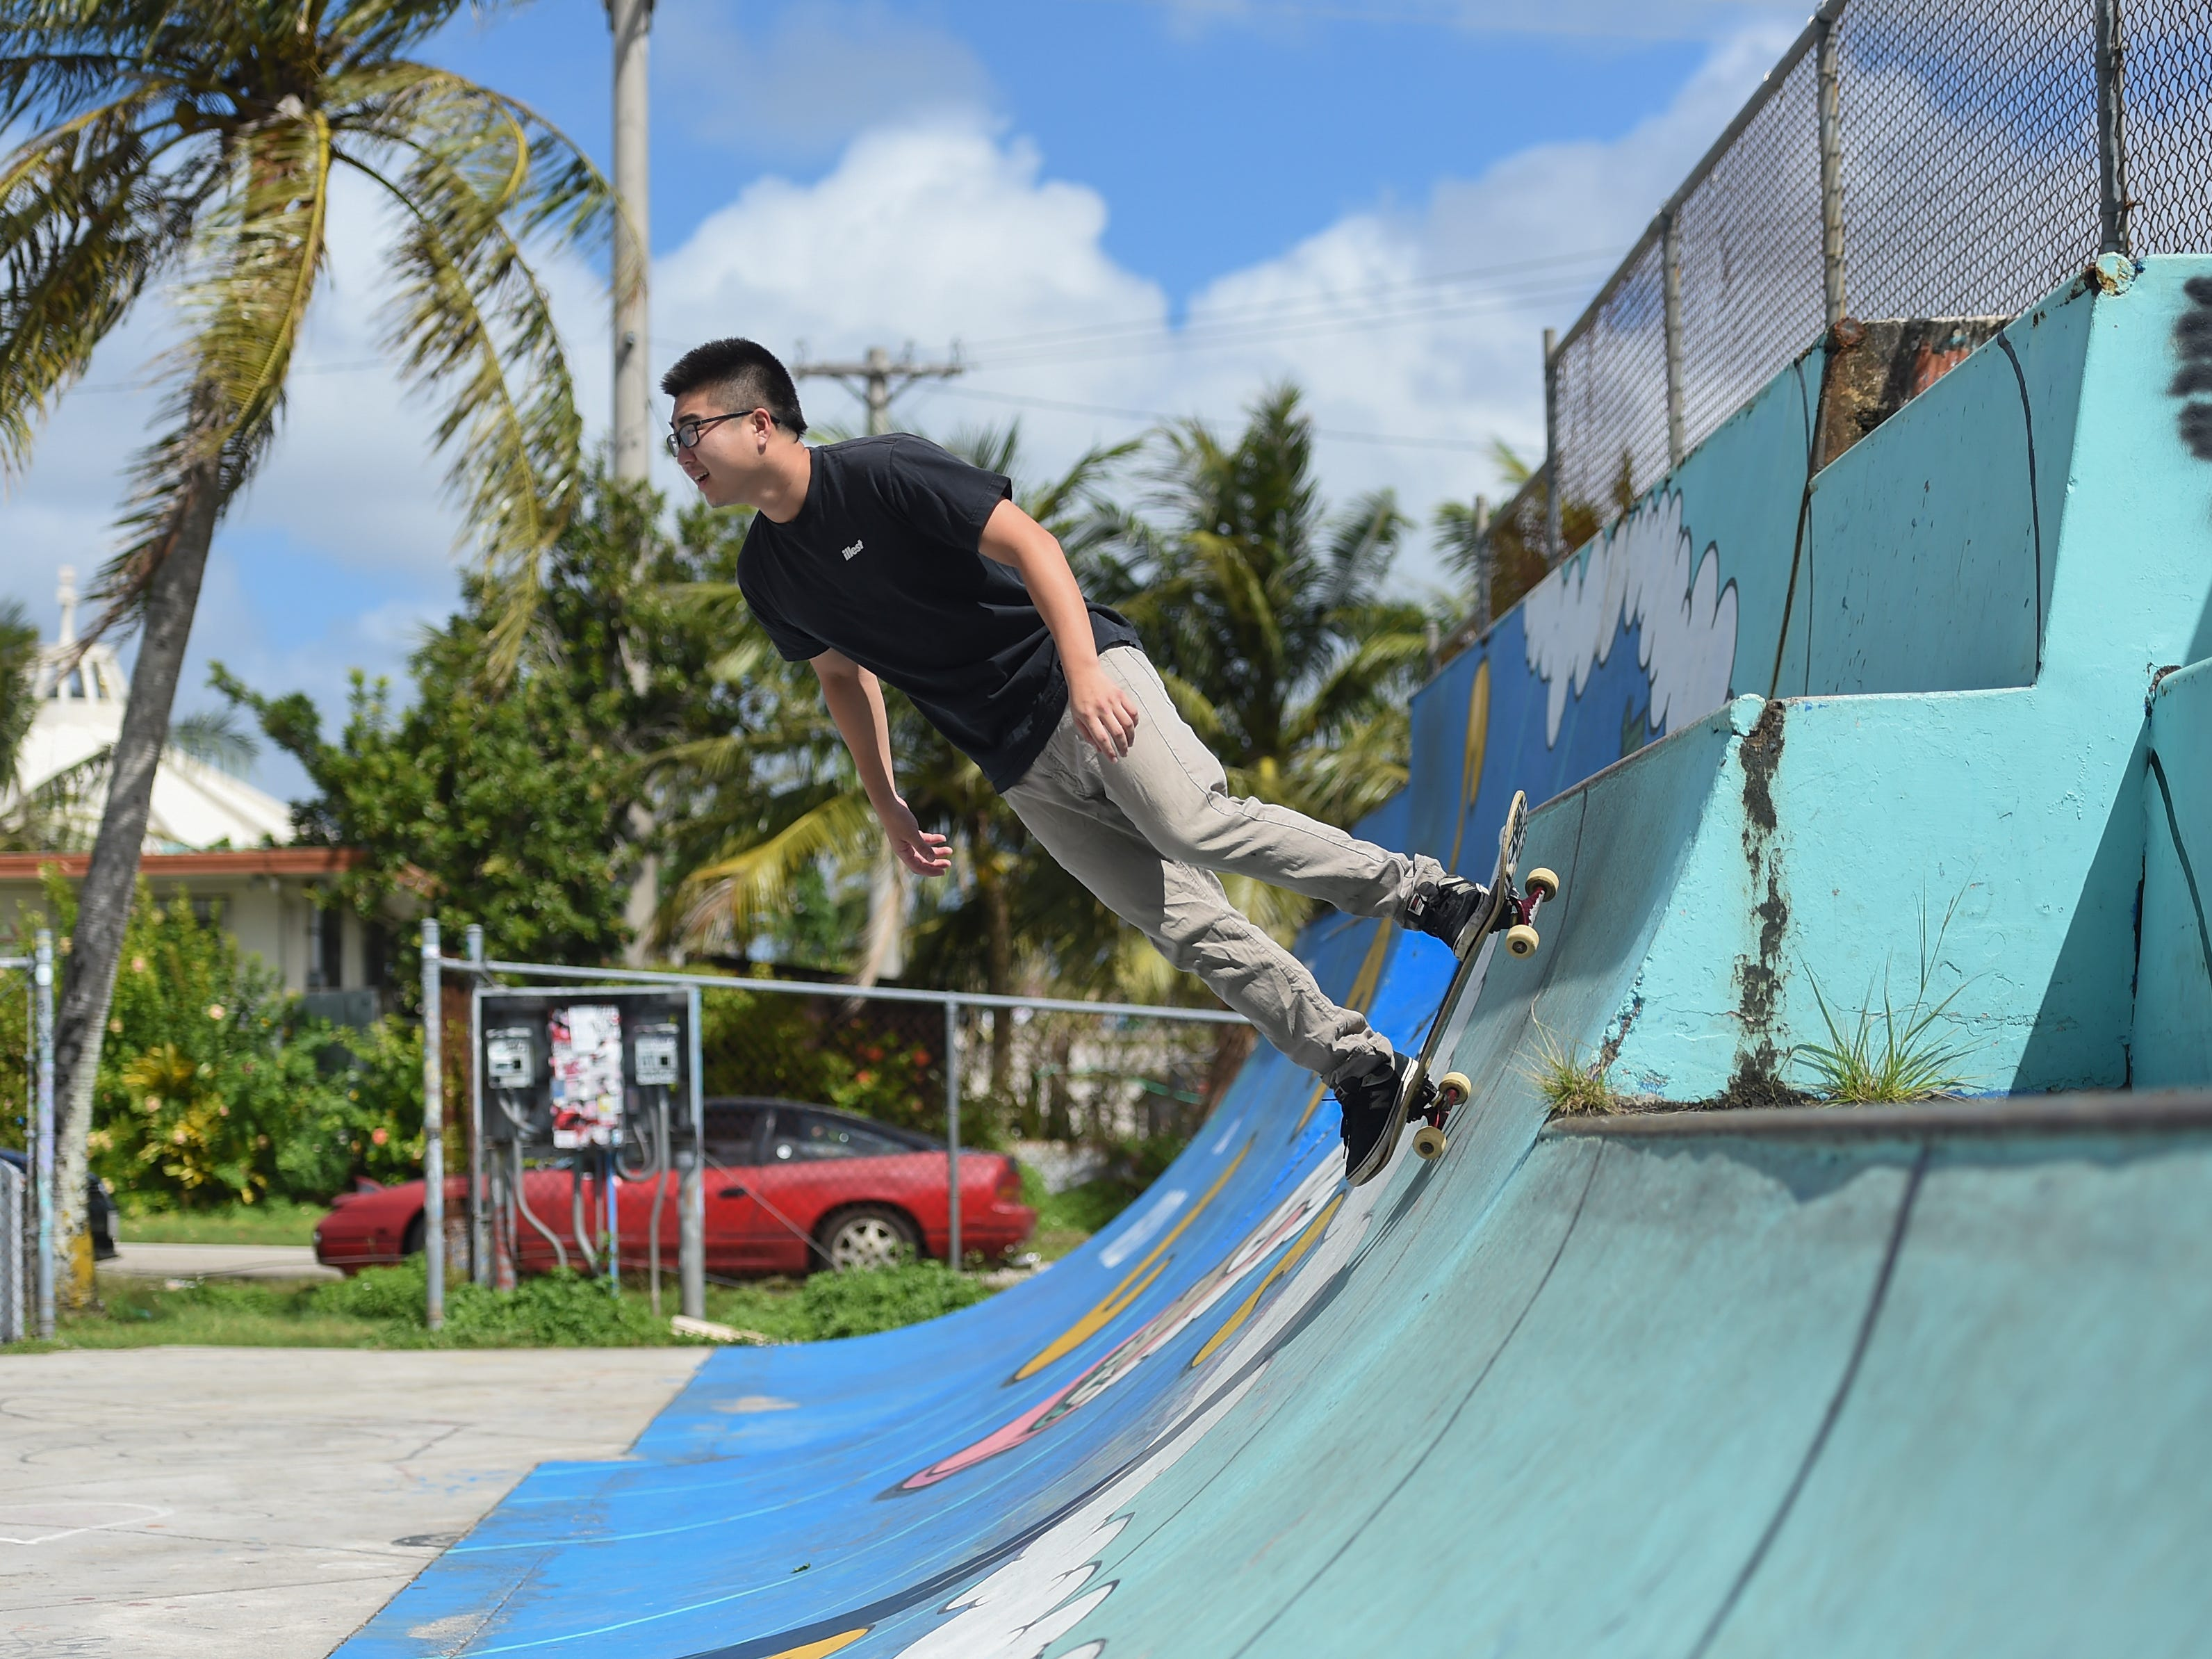 Dededo resident Andy Pass rides at the Dededo Skatepark on Feb. 3, 2019.